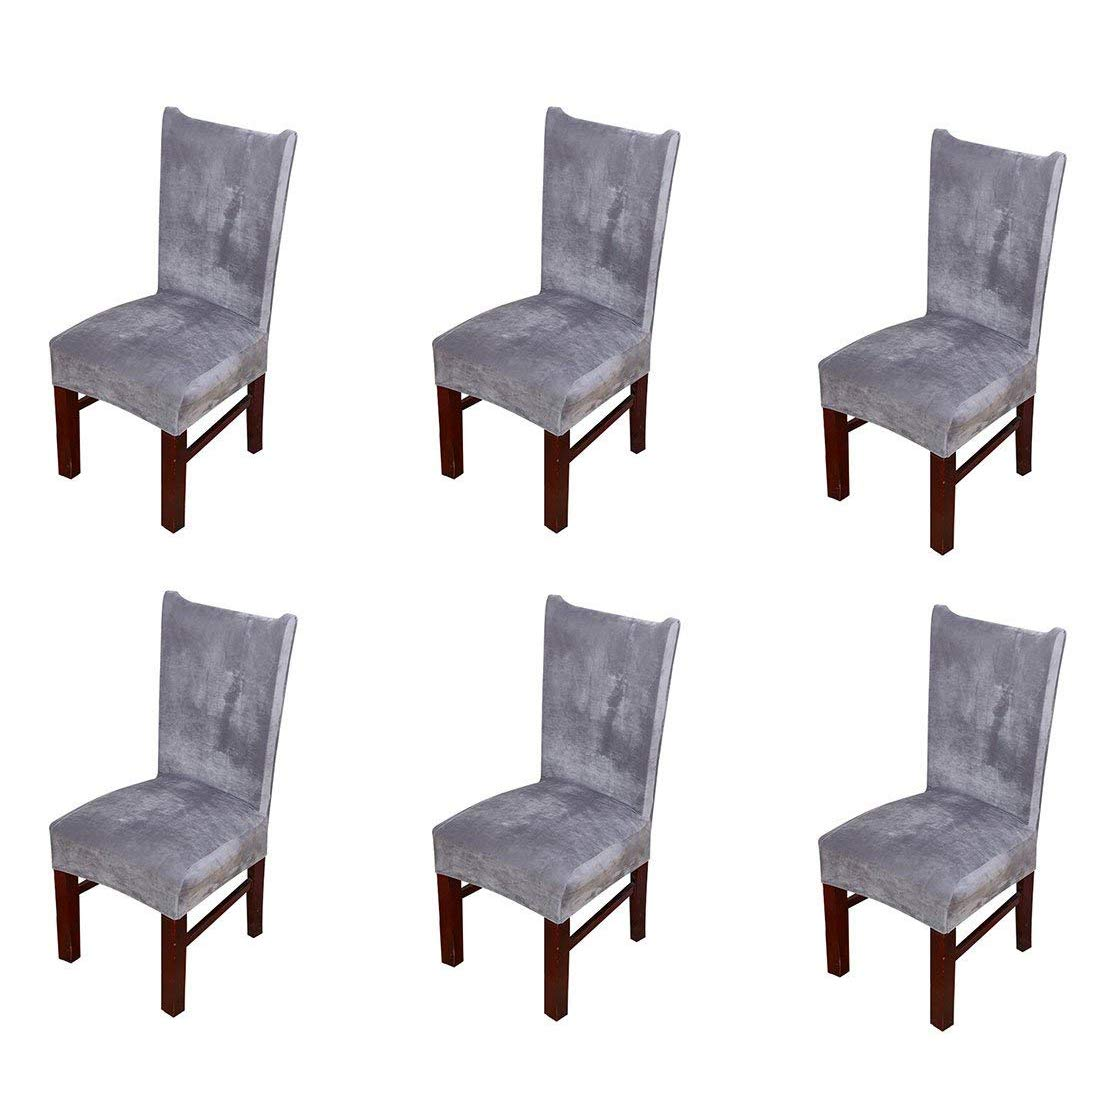 Pinji 6Pcs Stretch Chair Cover Thicken Removable Short Dining Room Protector Seat Slipcover Grey